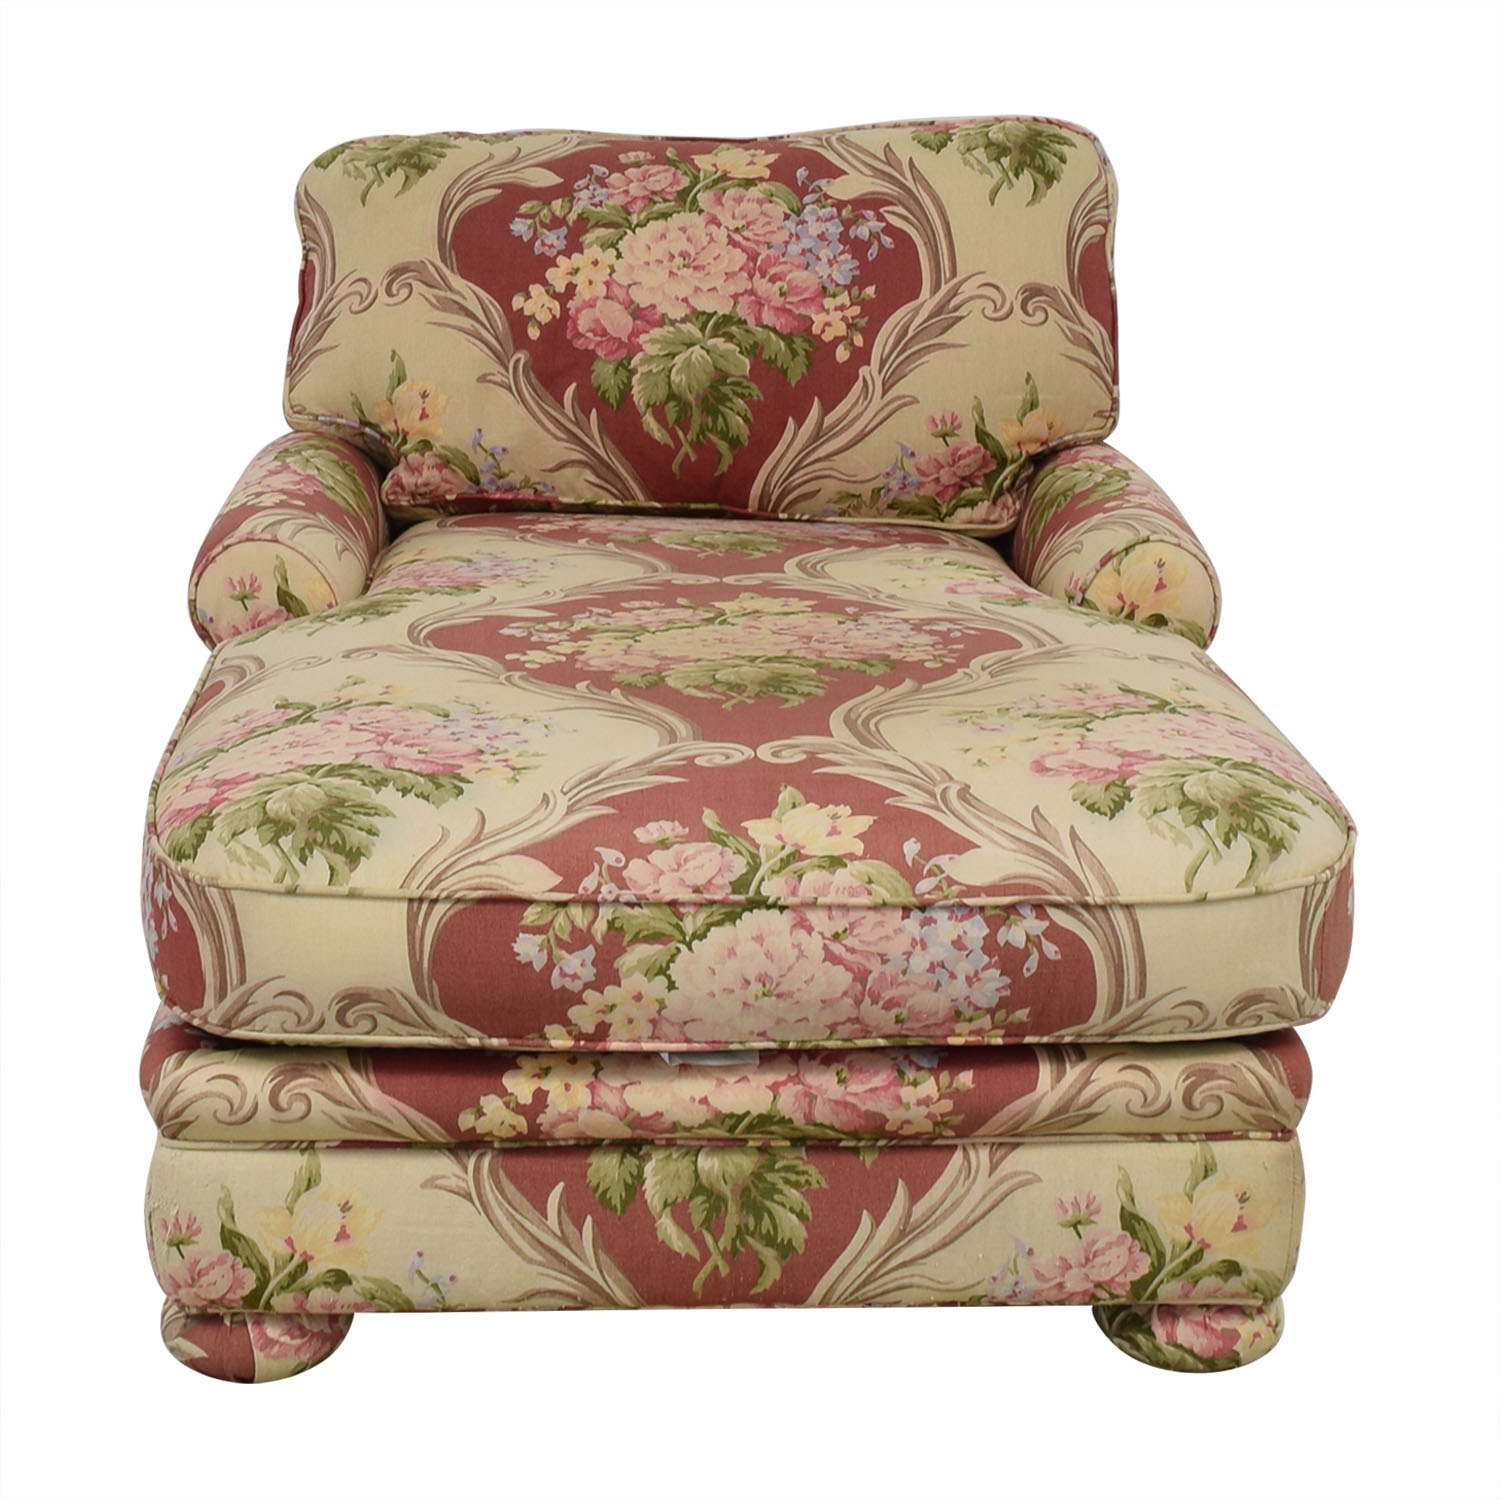 Ralph Lauren Home Ralph Lauren Chaise Lounge multi